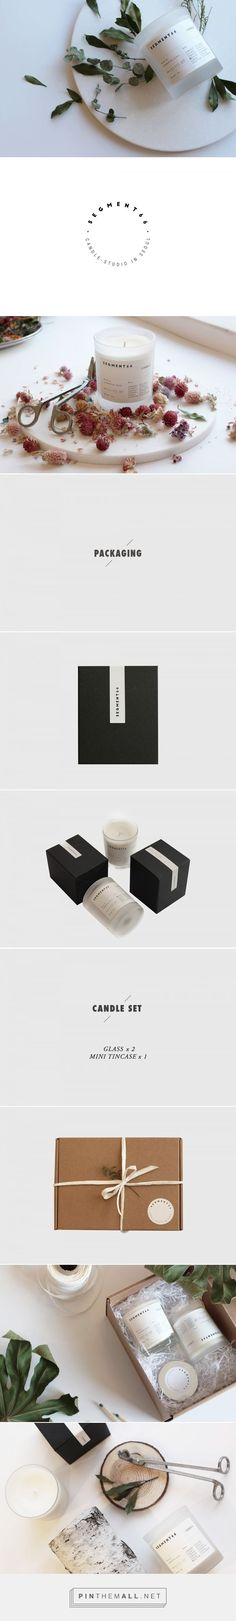 Candle Branding and Packaging by Haeyeong Park Candle Branding, Candle Packaging, Mini Candles, Soy Candles, Strong Scented Candles, Packaging Design, Branding Design, Candle Making Business, Romantic Candles